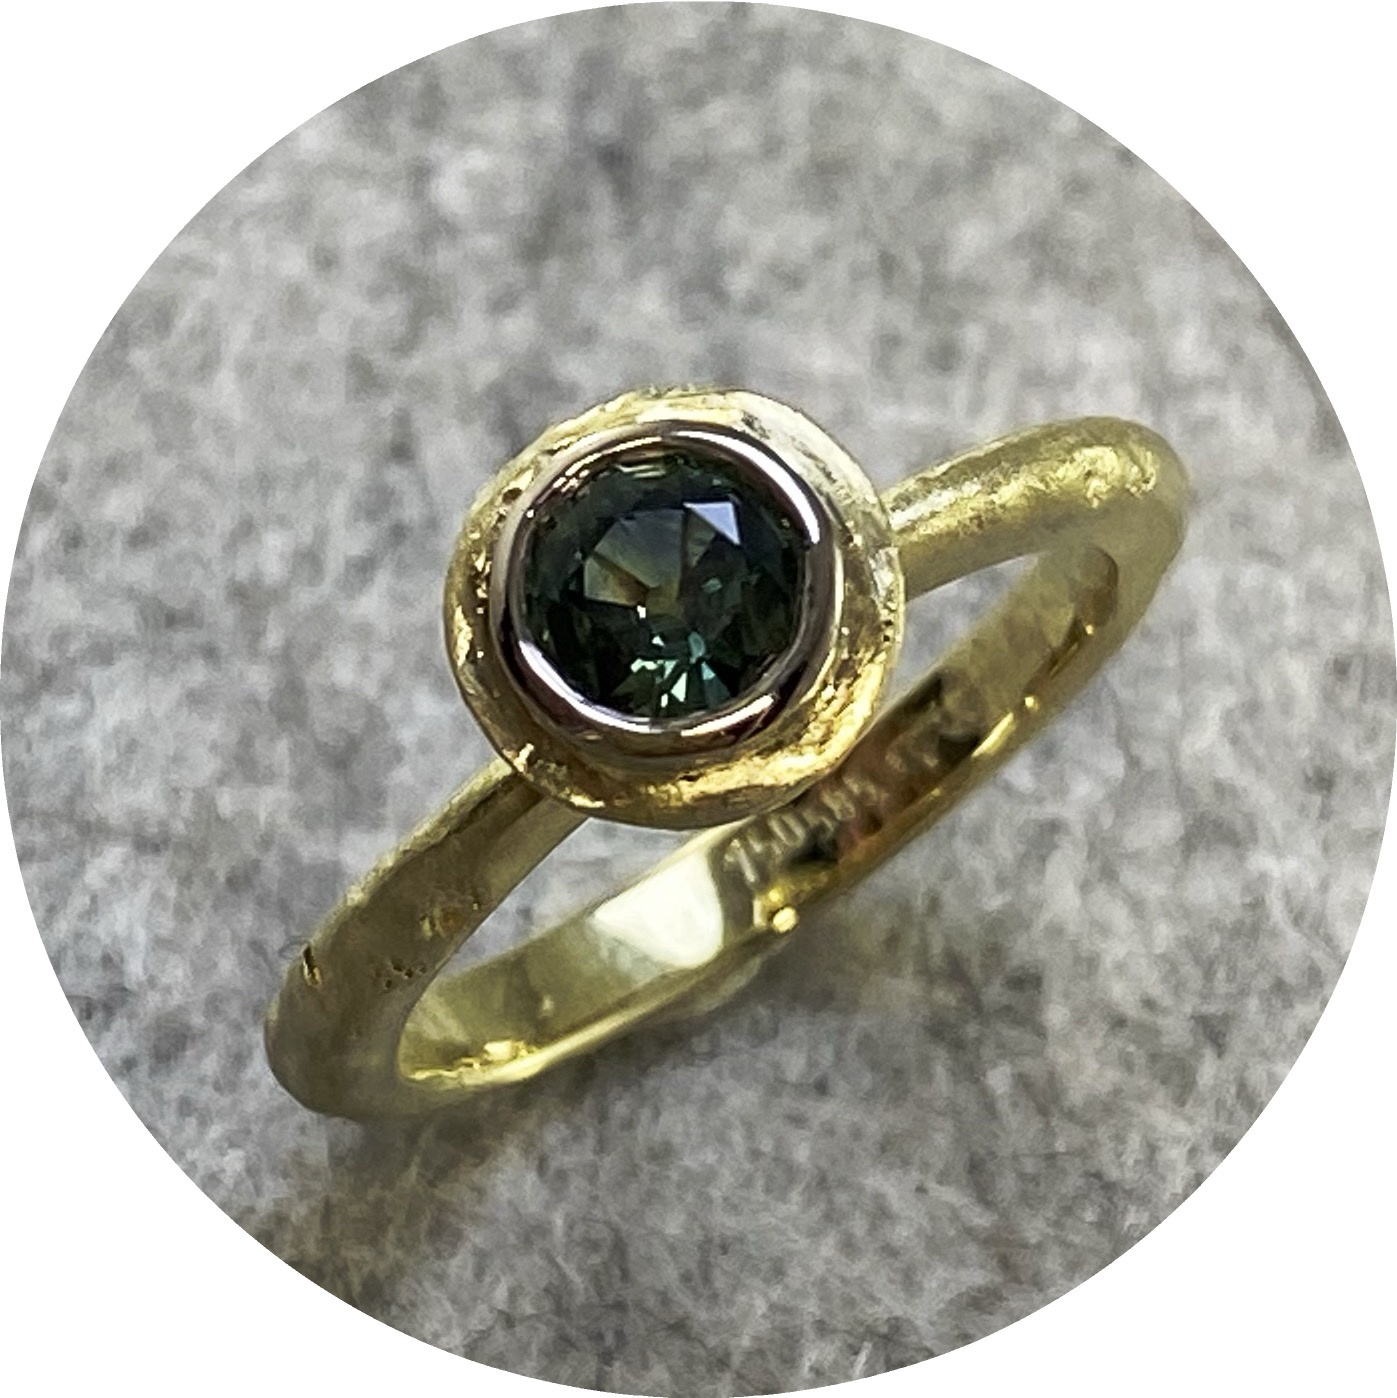 Angela Natalier- Disarmed Solitaire. Inclined Halo, size M. 14ct yellow gold. 0.50ct Parti Australian sapphire mined and cut. 8x 1.5mm parti sapphires.